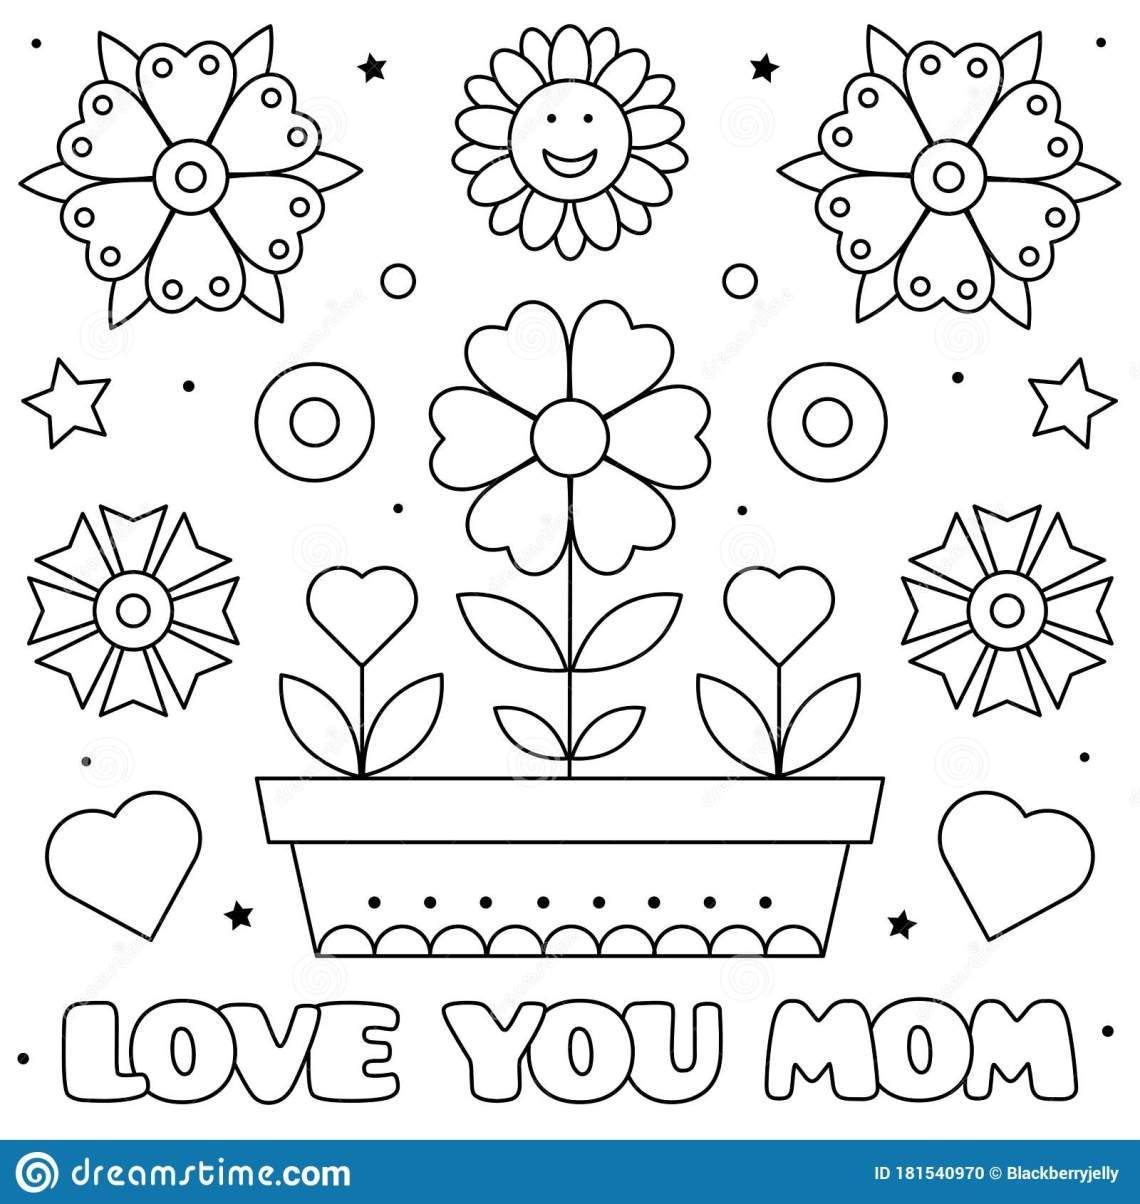 Download Love You Mom. Coloring Page. Vector Illustration Of ...